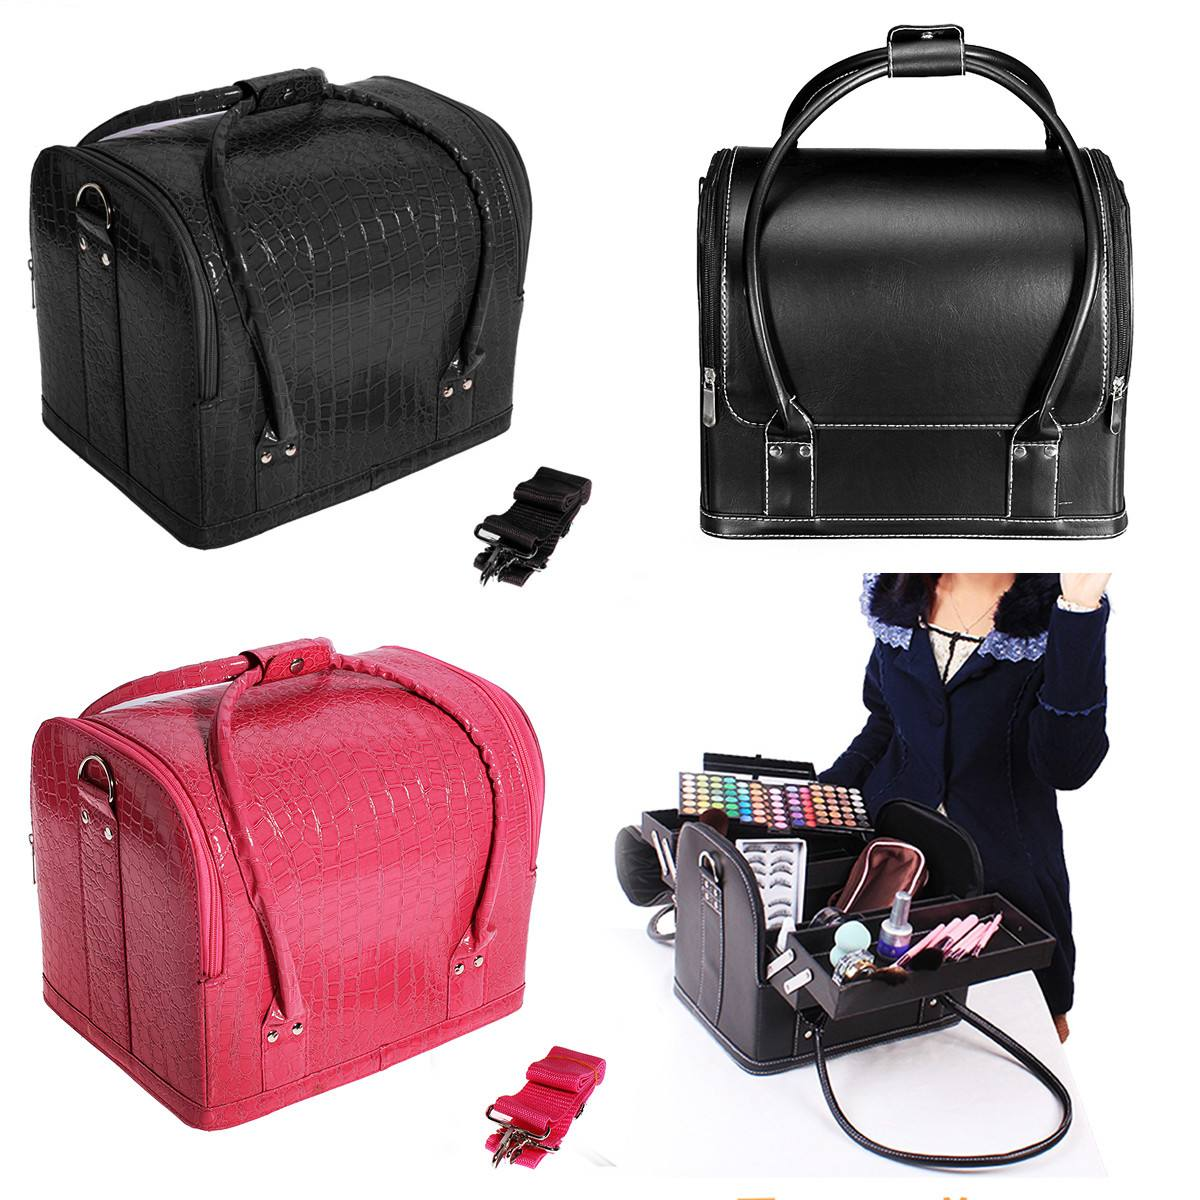 PU Leather Suitcase Cosmetic Bag Case Large Capacity Portable Cosmetics Organizer Manicure Cosmetology Suitcases